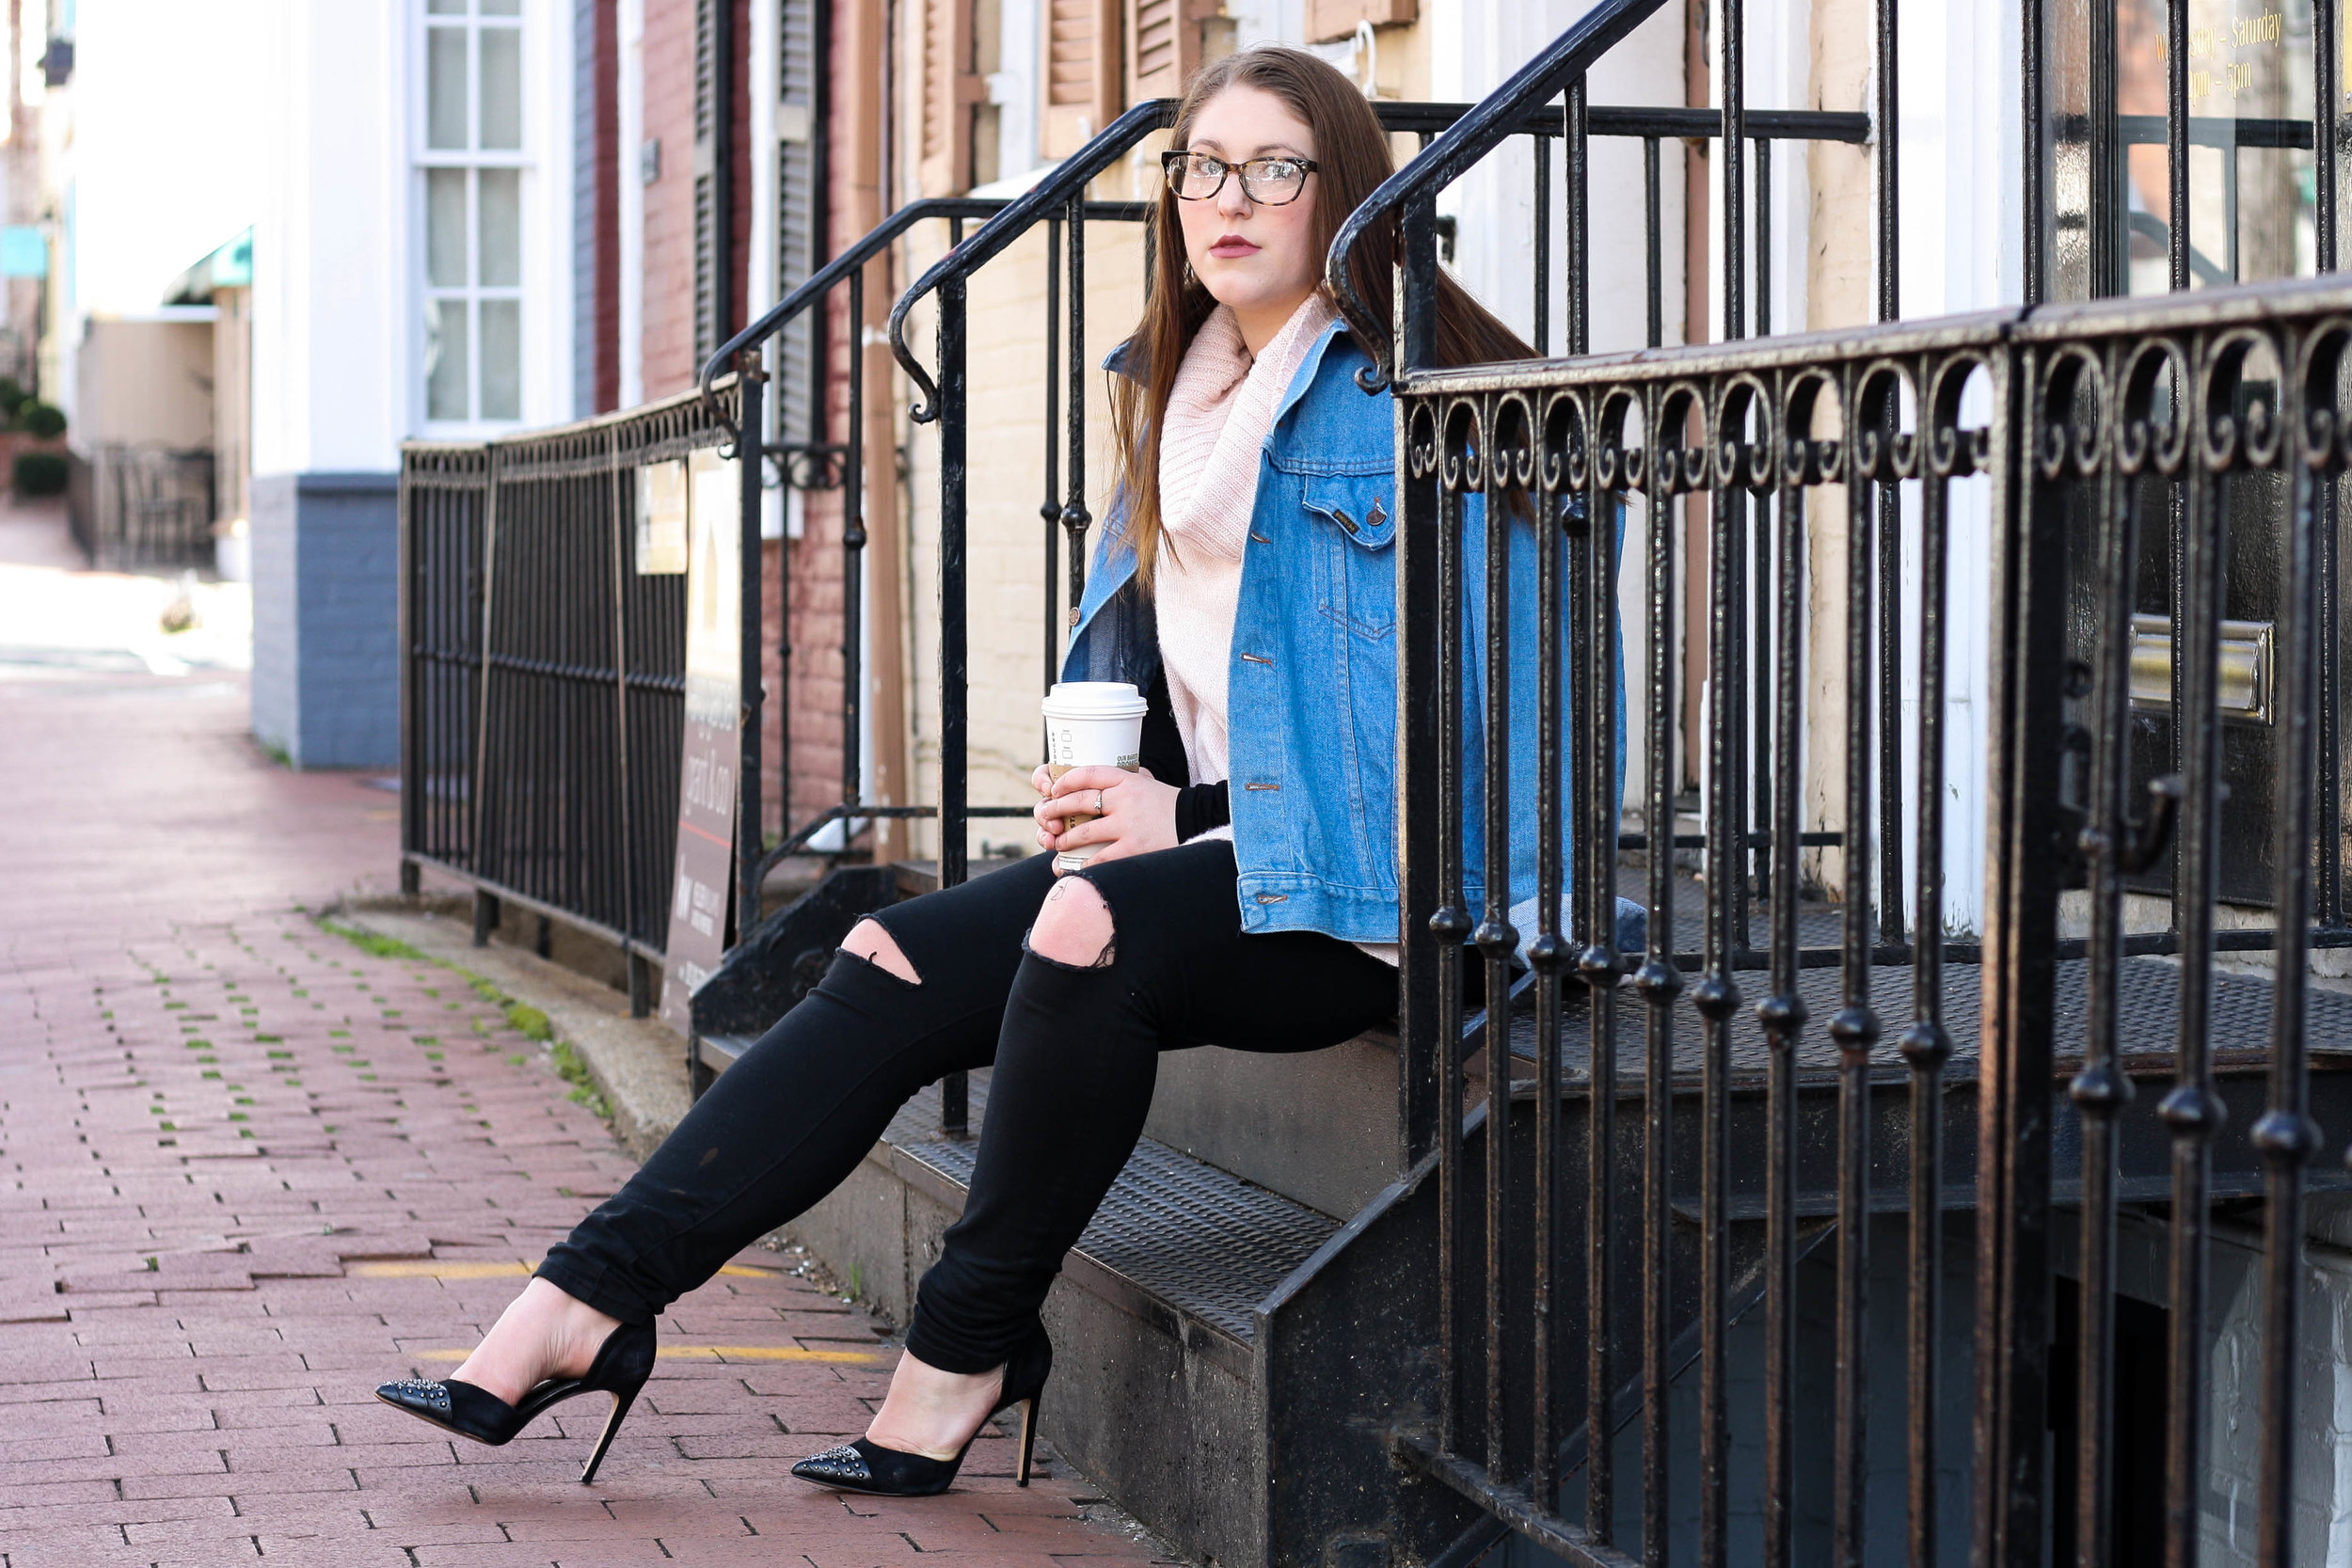 Spent a morning in Georgetown with the super smart and col Taylor of Baltimore-based blog  StylishlyTaylored .  We talked medical science research, strange photo retouching practices, and snapped away while exploring Georgetown.  My Favorites: